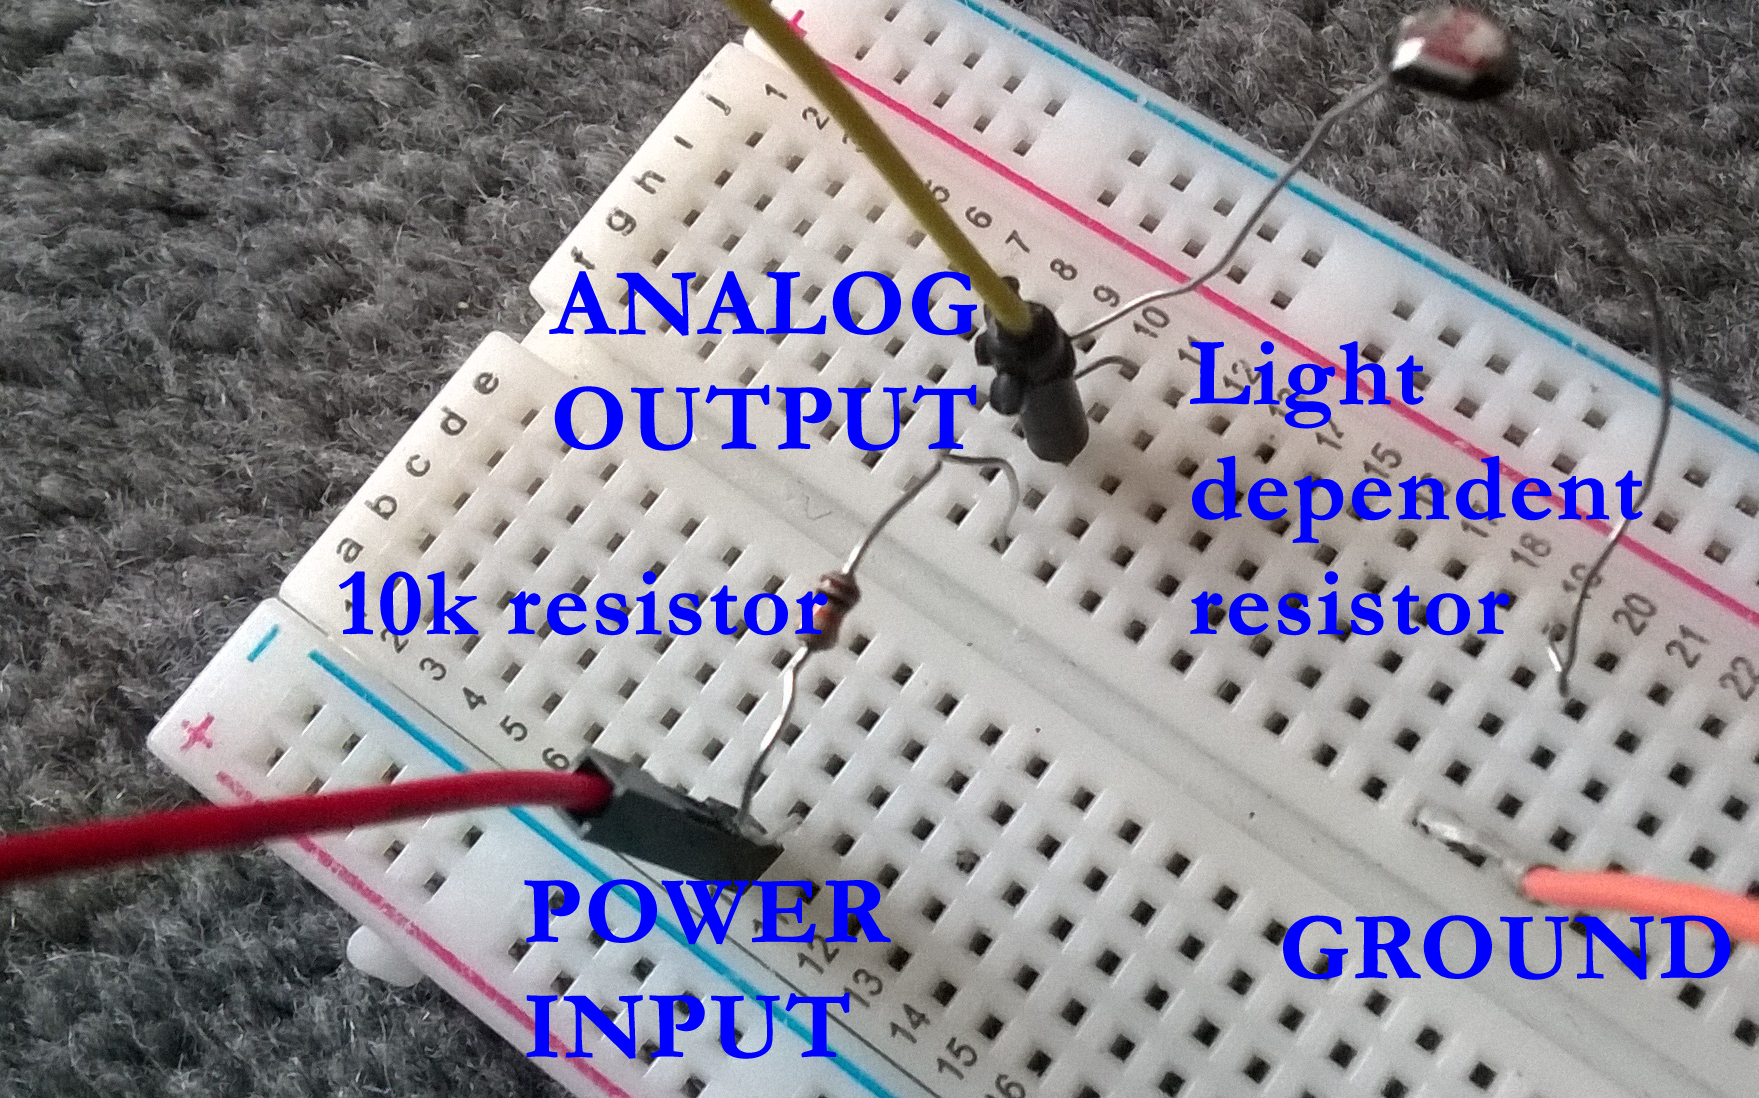 October 2015 Scratchmypi Thermistor Arduino 10k Circuit The Analog Output Can Go To Any Of Inputs